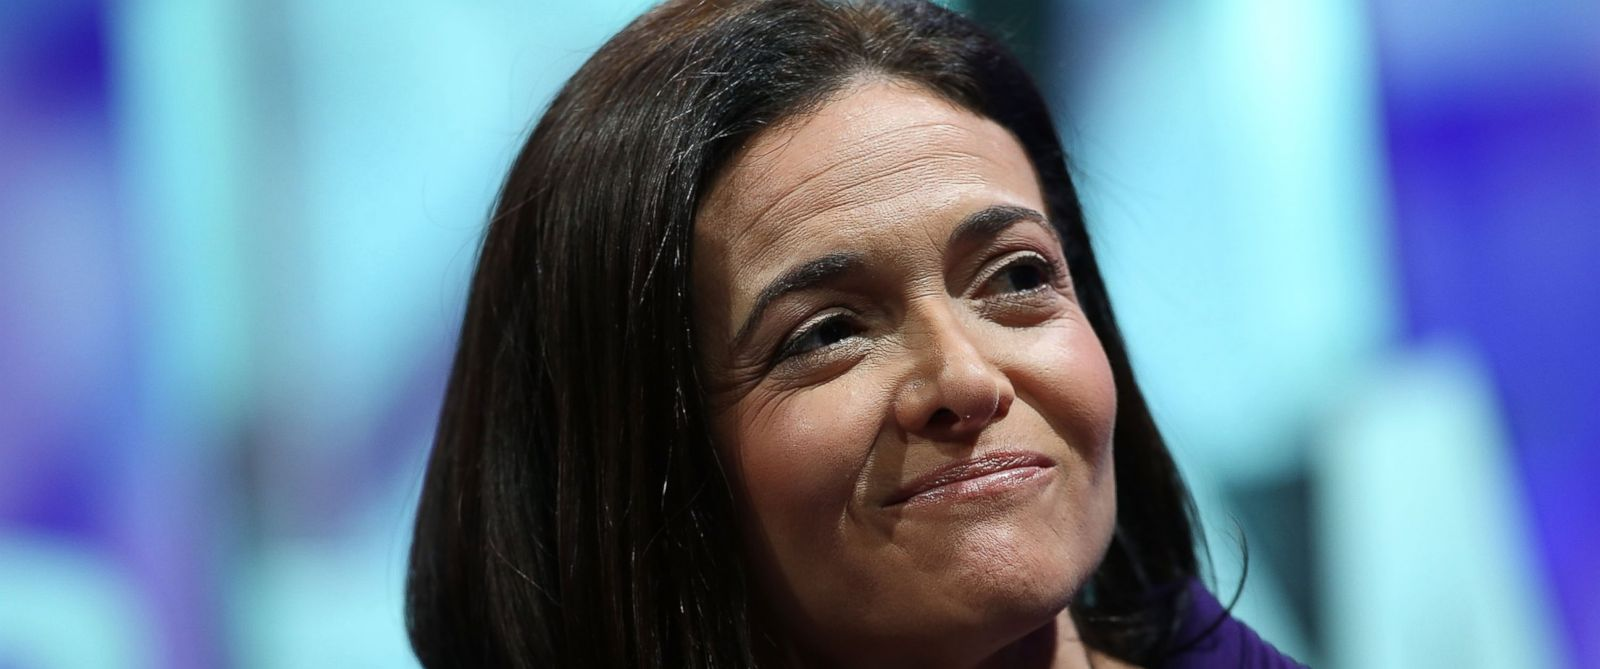 PHOTO: Facebook COO Sheryl Sandberg speaks during the Fortune Global Forum on Nov. 3, 2015 in San Francisco, California.